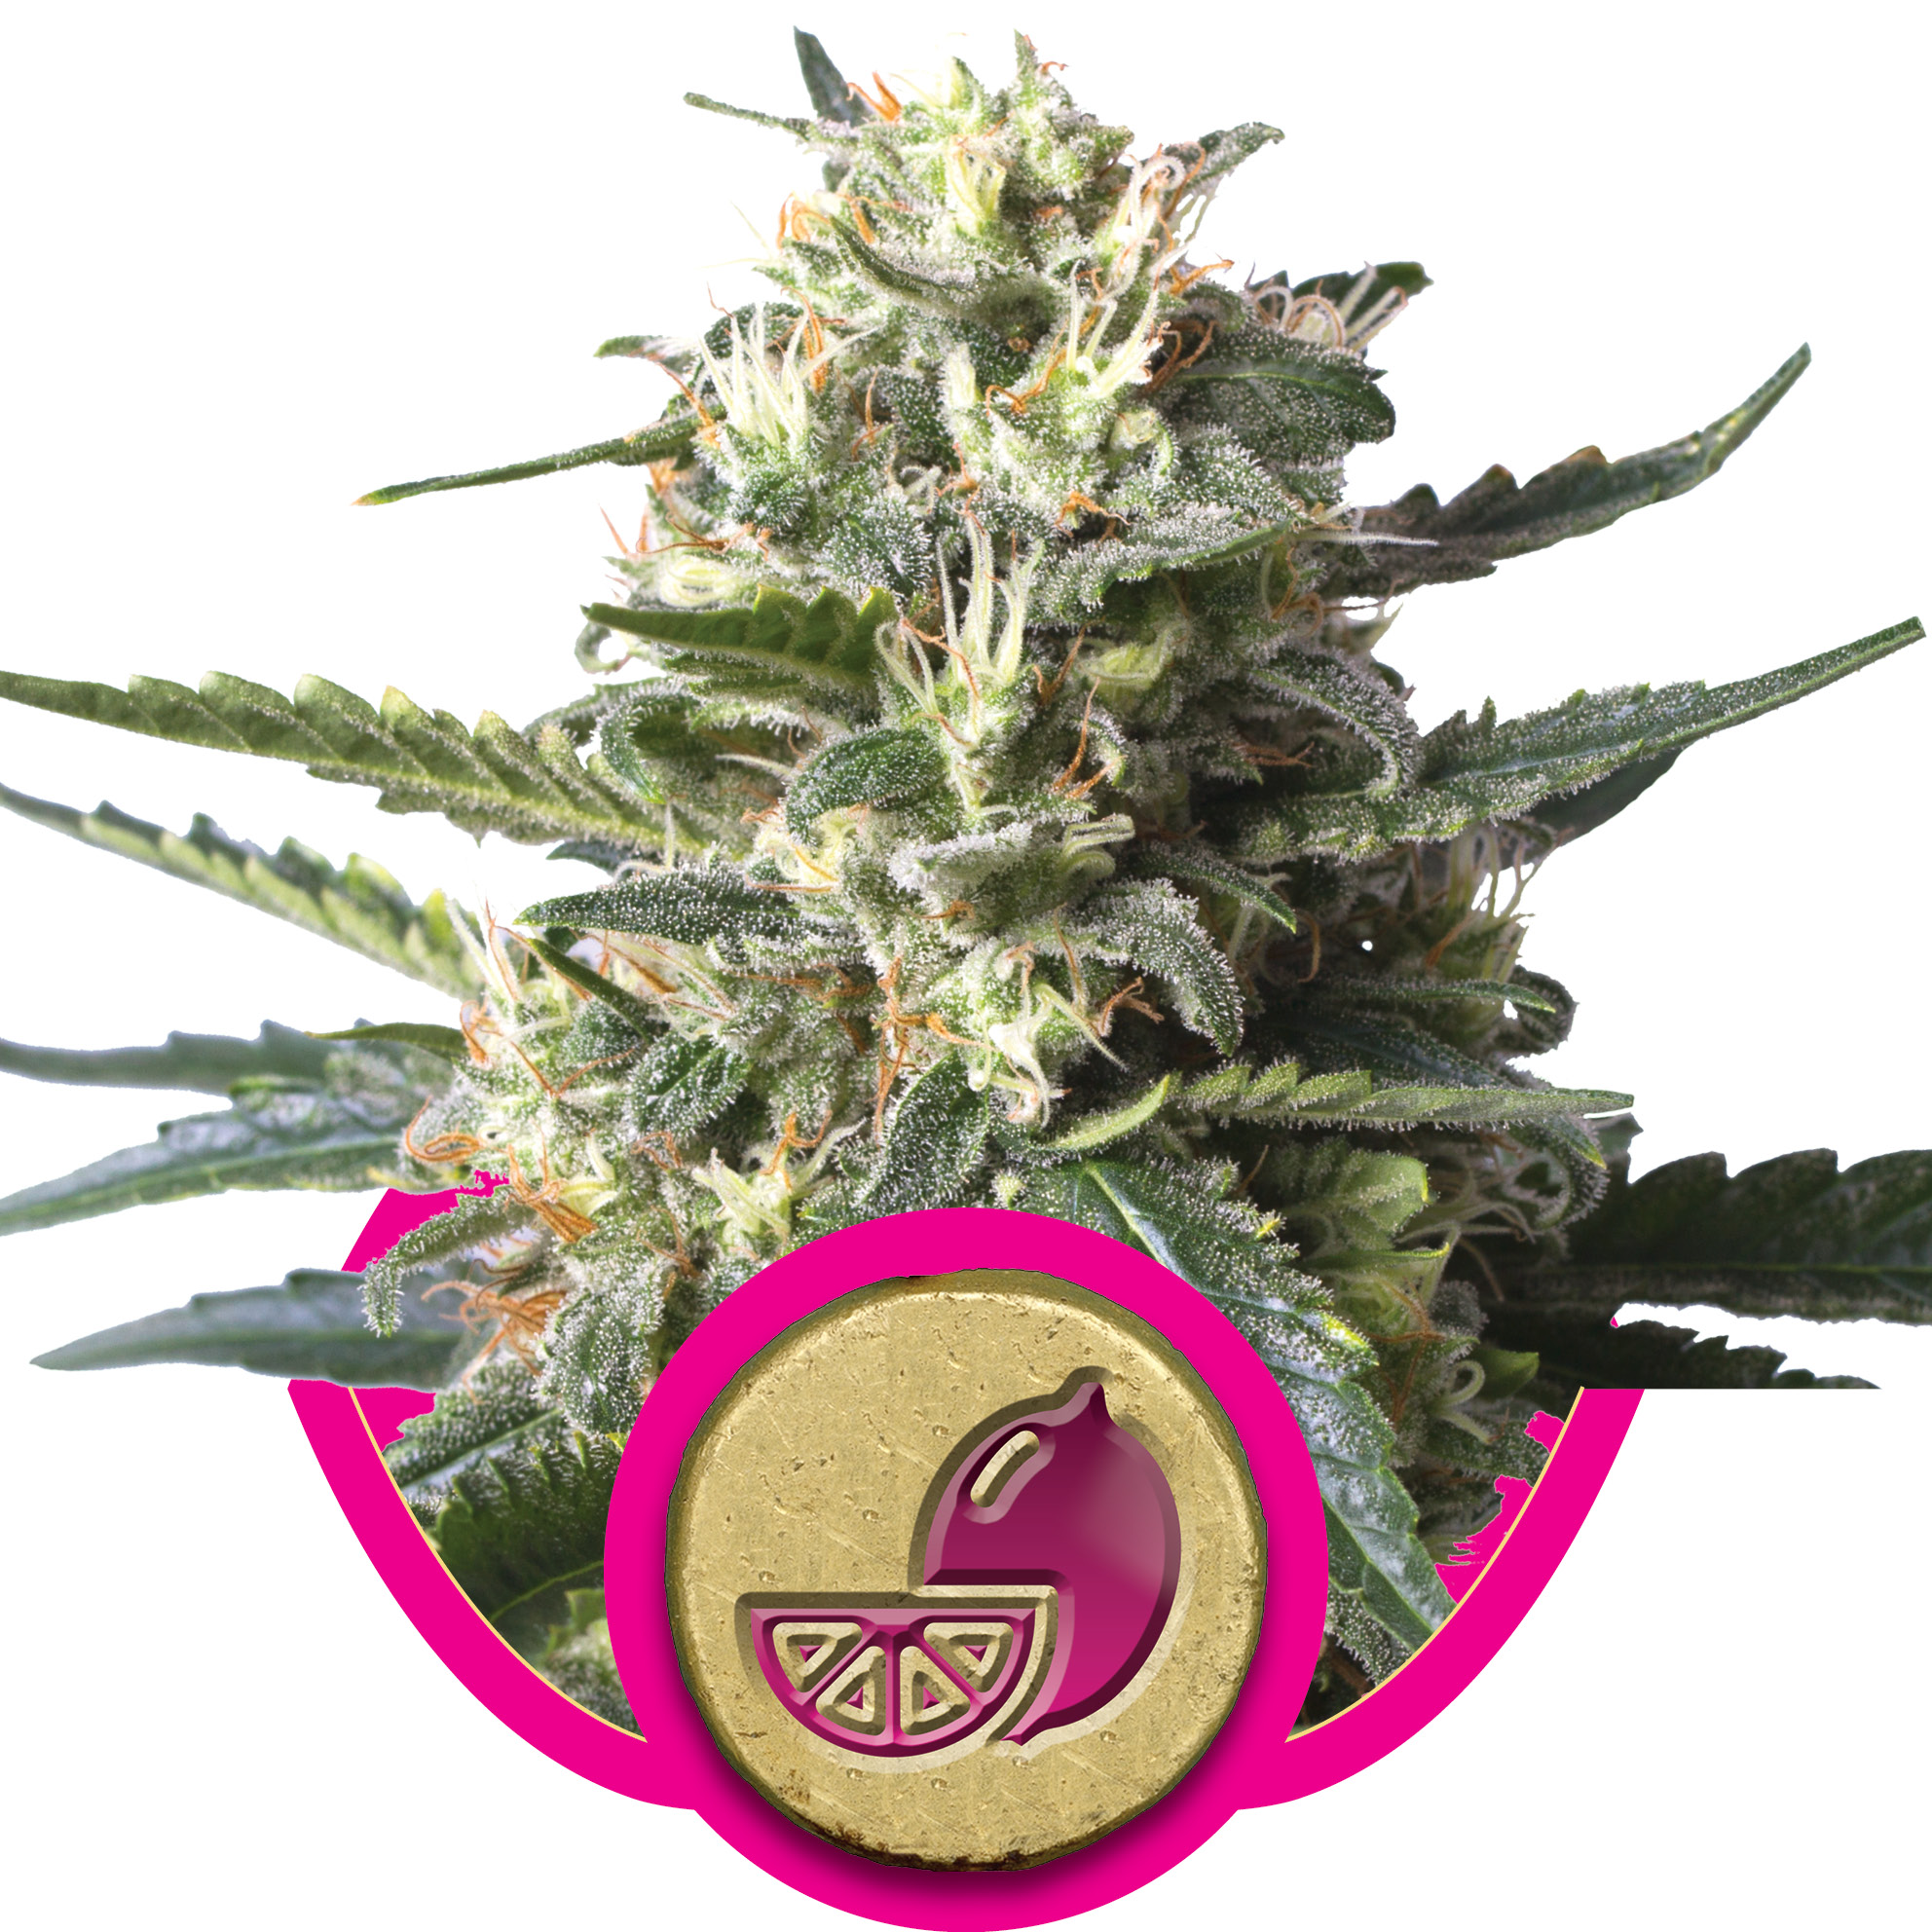 Lemon Shinning Silver Haze (former Lemon Haze) Feminized Marijuana Seeds